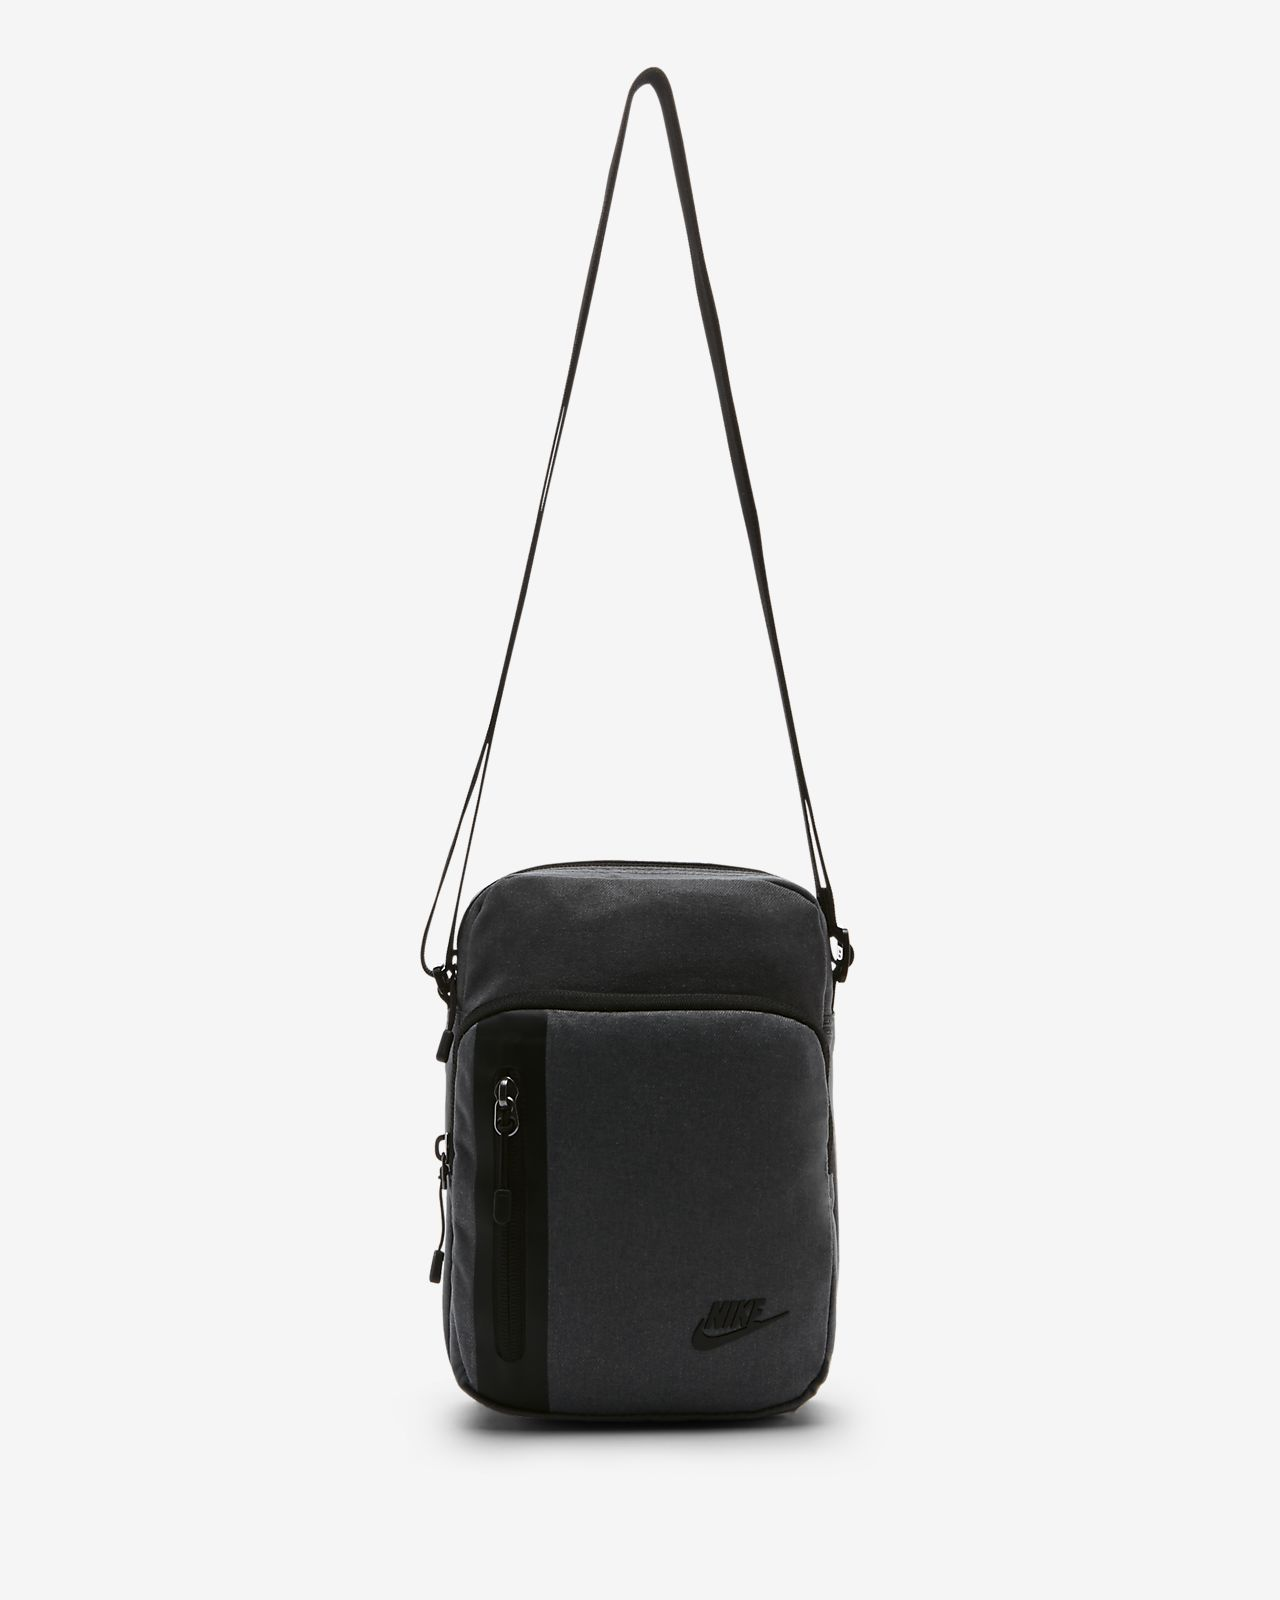 Nike Nike profile crossbody bag | Luisaviaroma